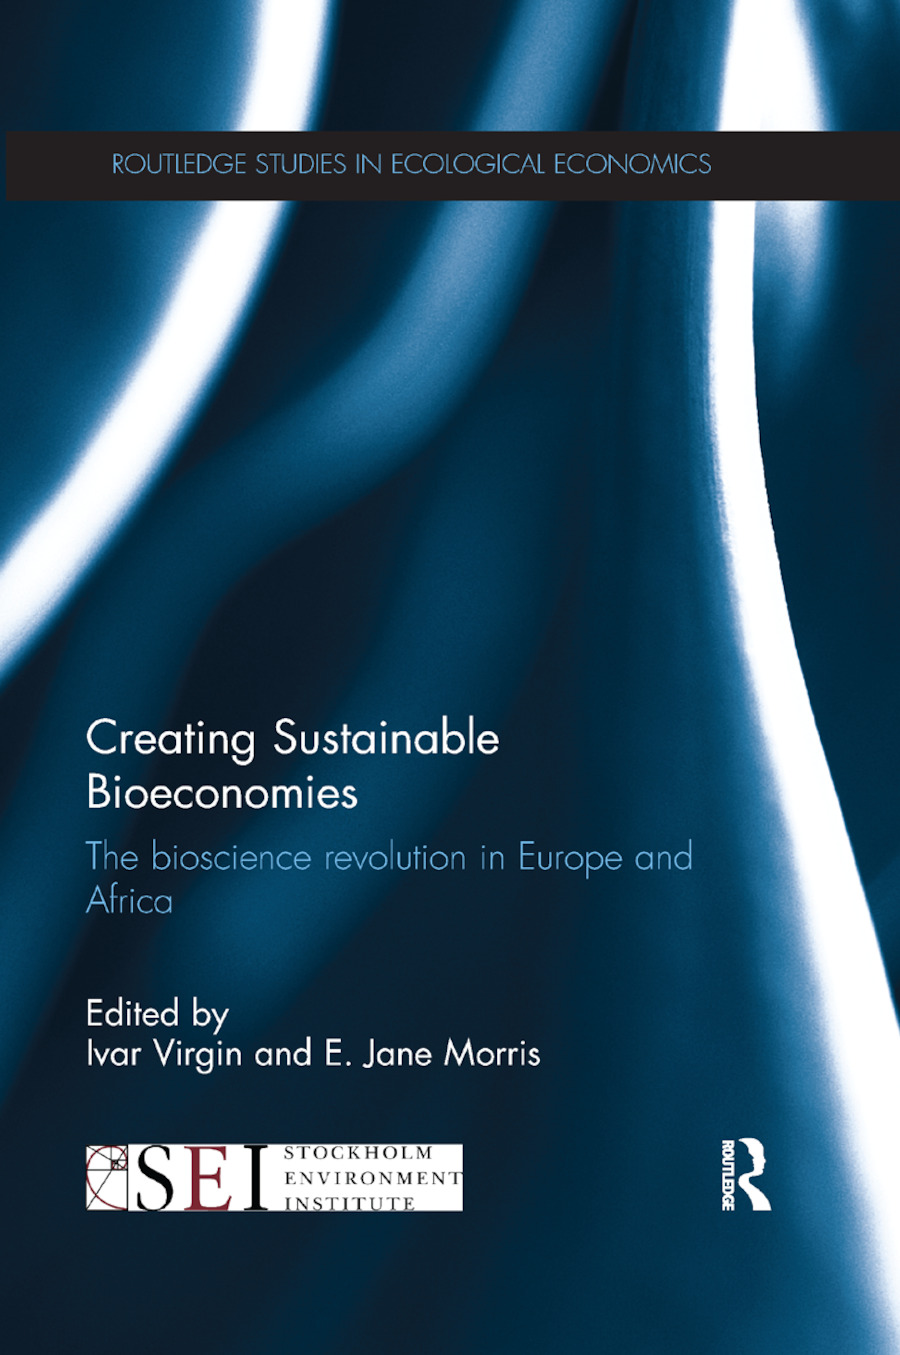 Creating Sustainable Bioeconomies: The bioscience revolution in Europe and Africa book cover